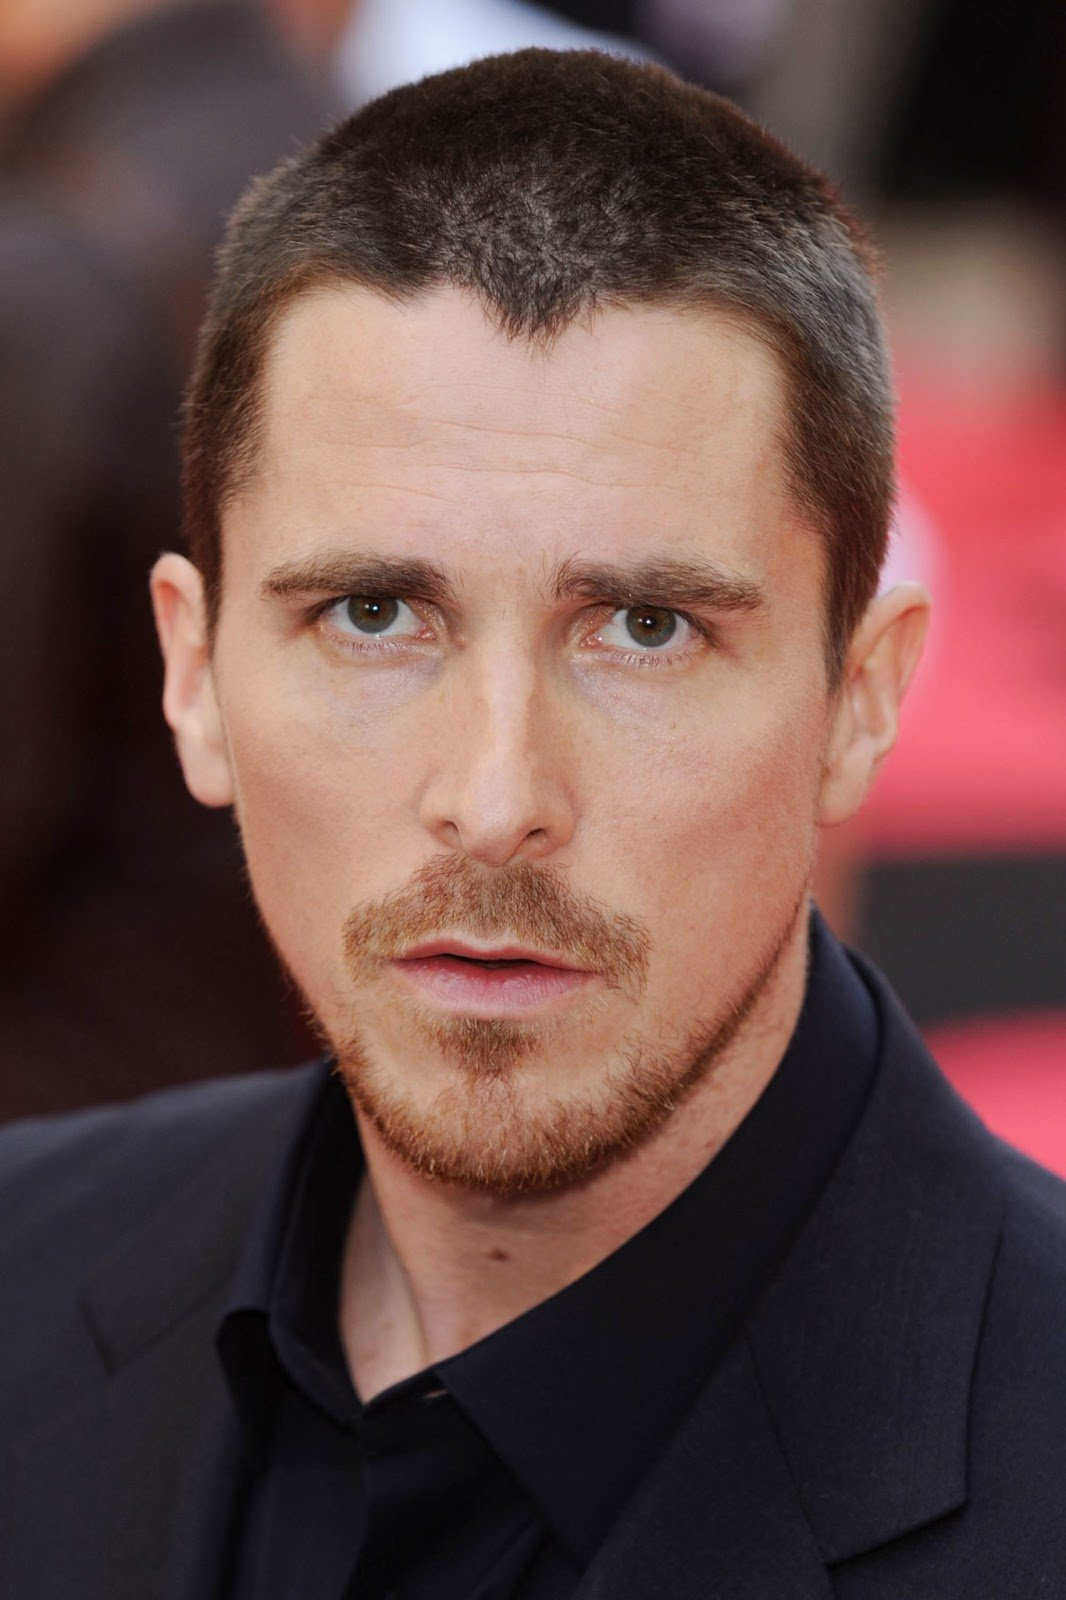 The Best Christian Bale Hairstyles Men Hairstyles Short Long Medium Hairtyle Styling Tips New Pictures